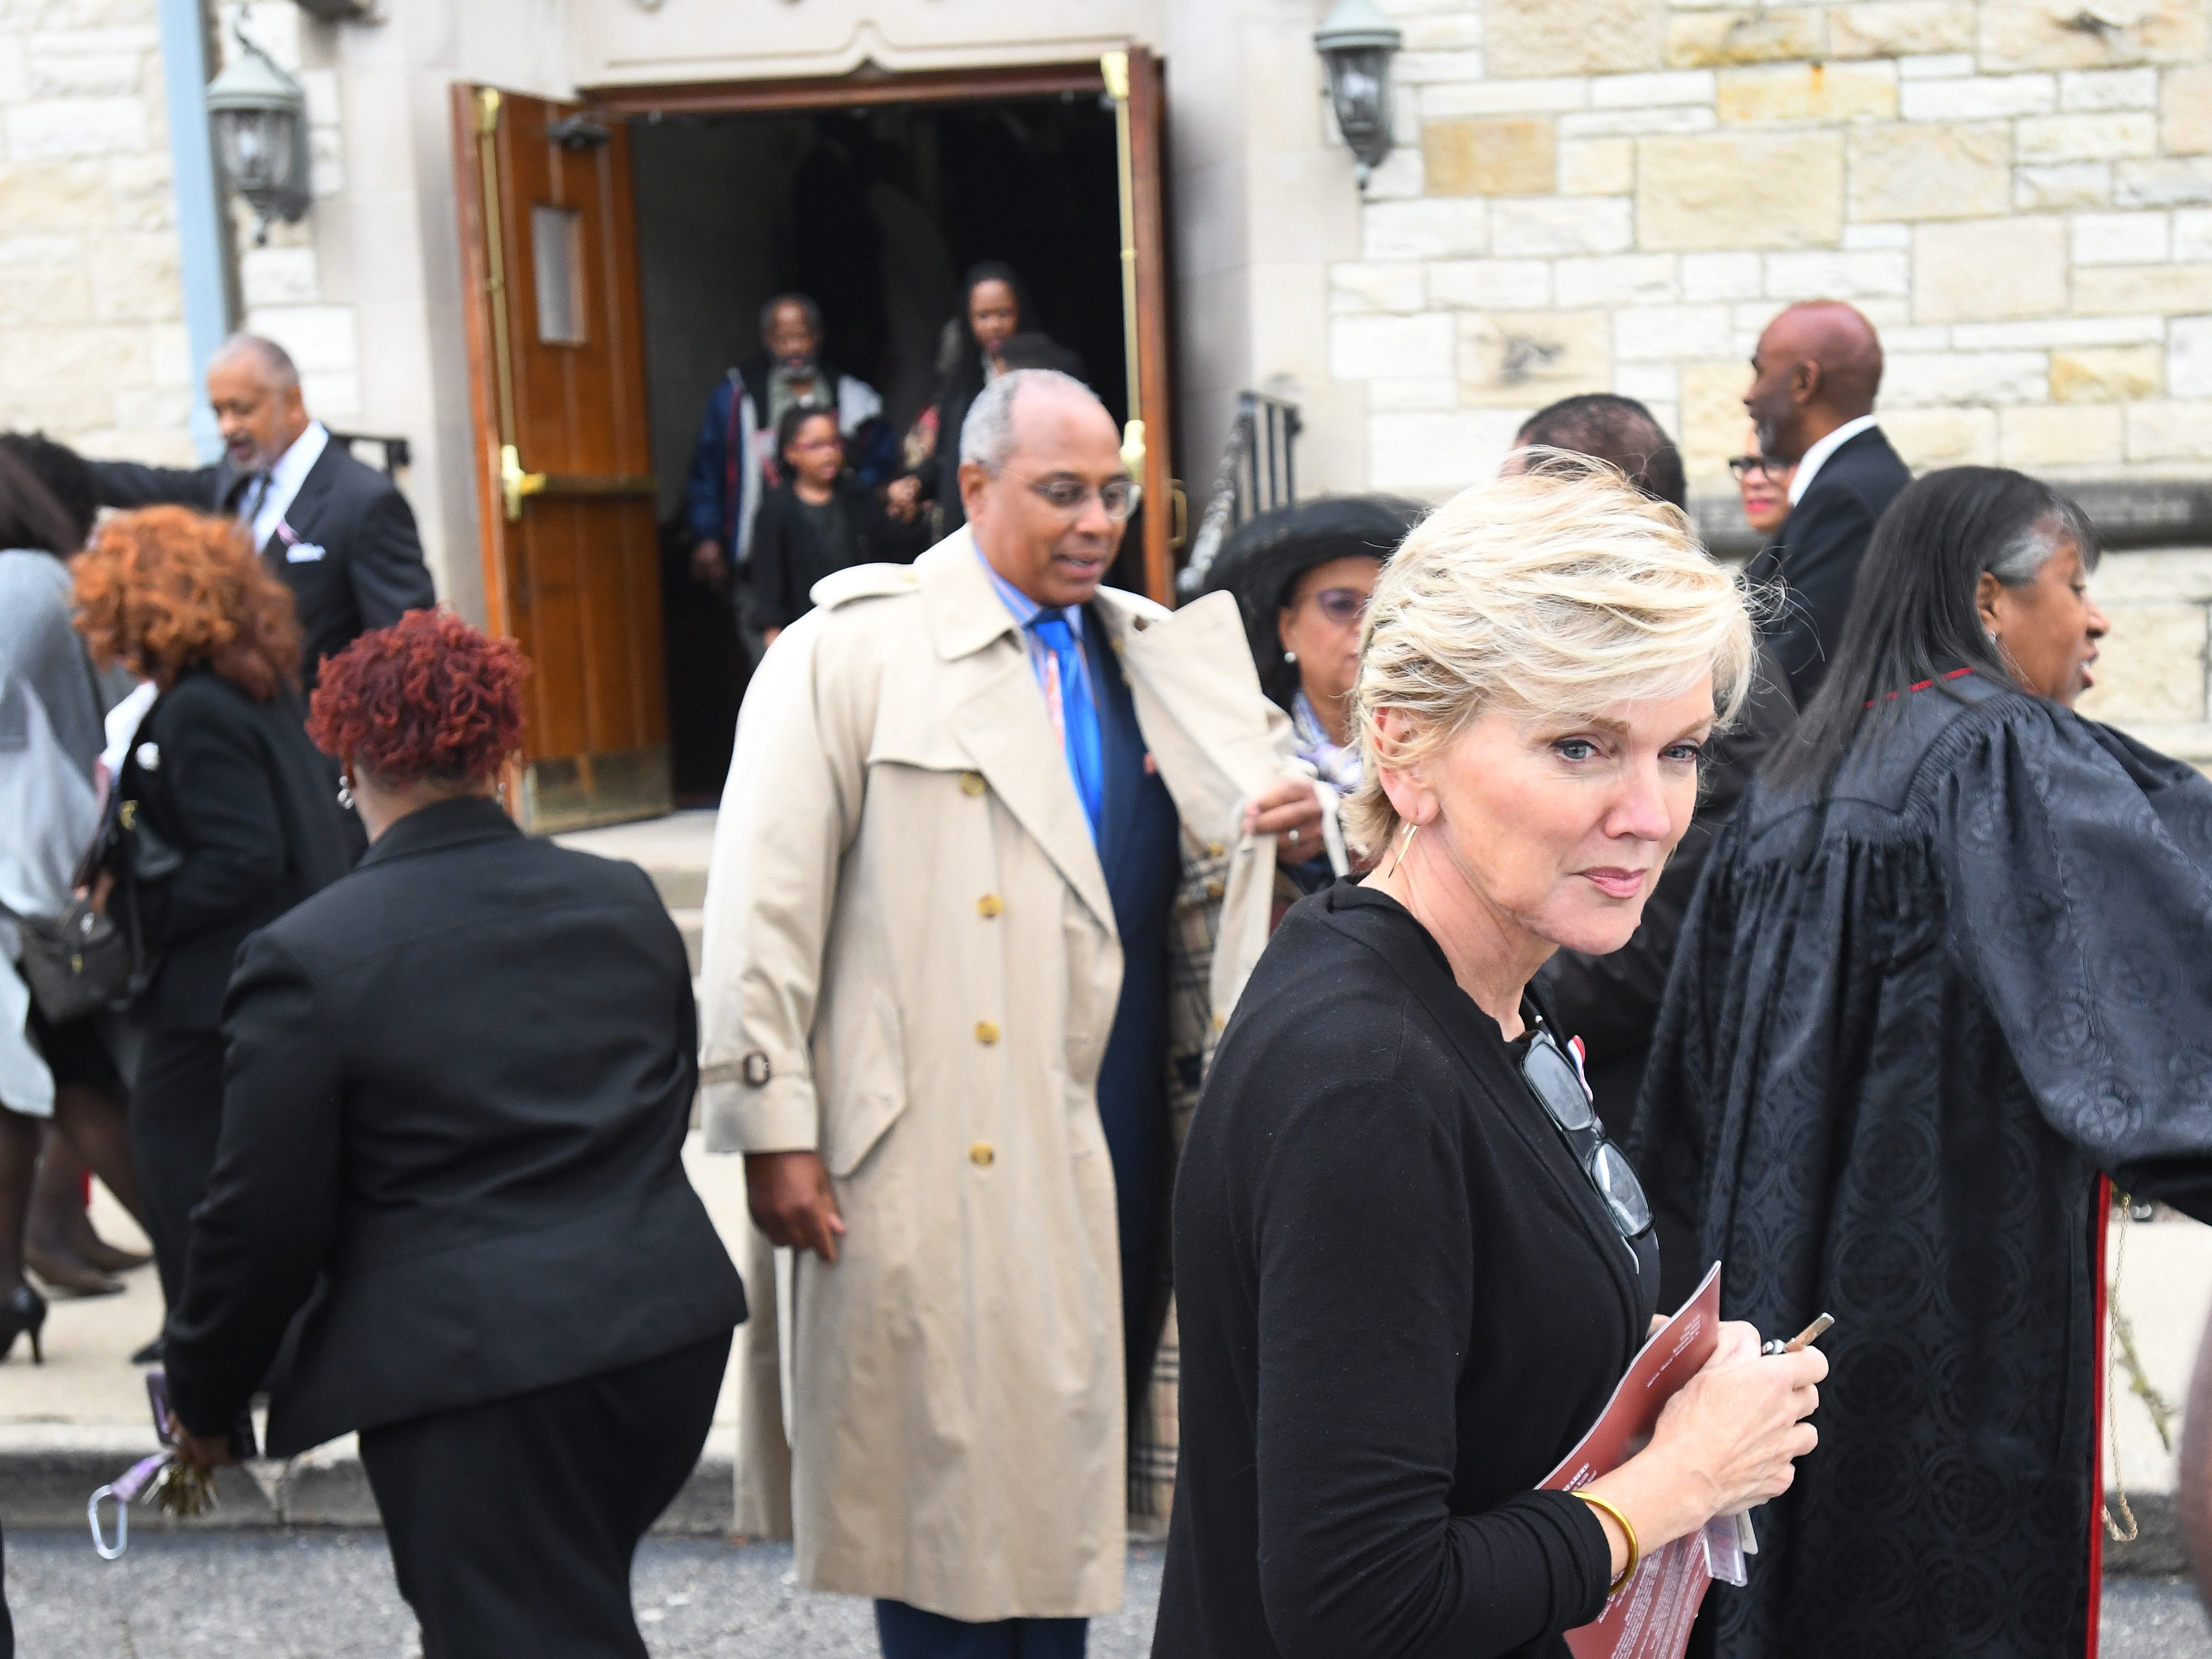 Former Michigan Governor Jennifer Granholm leaves the church after the funeral of Judge Damon Keith.